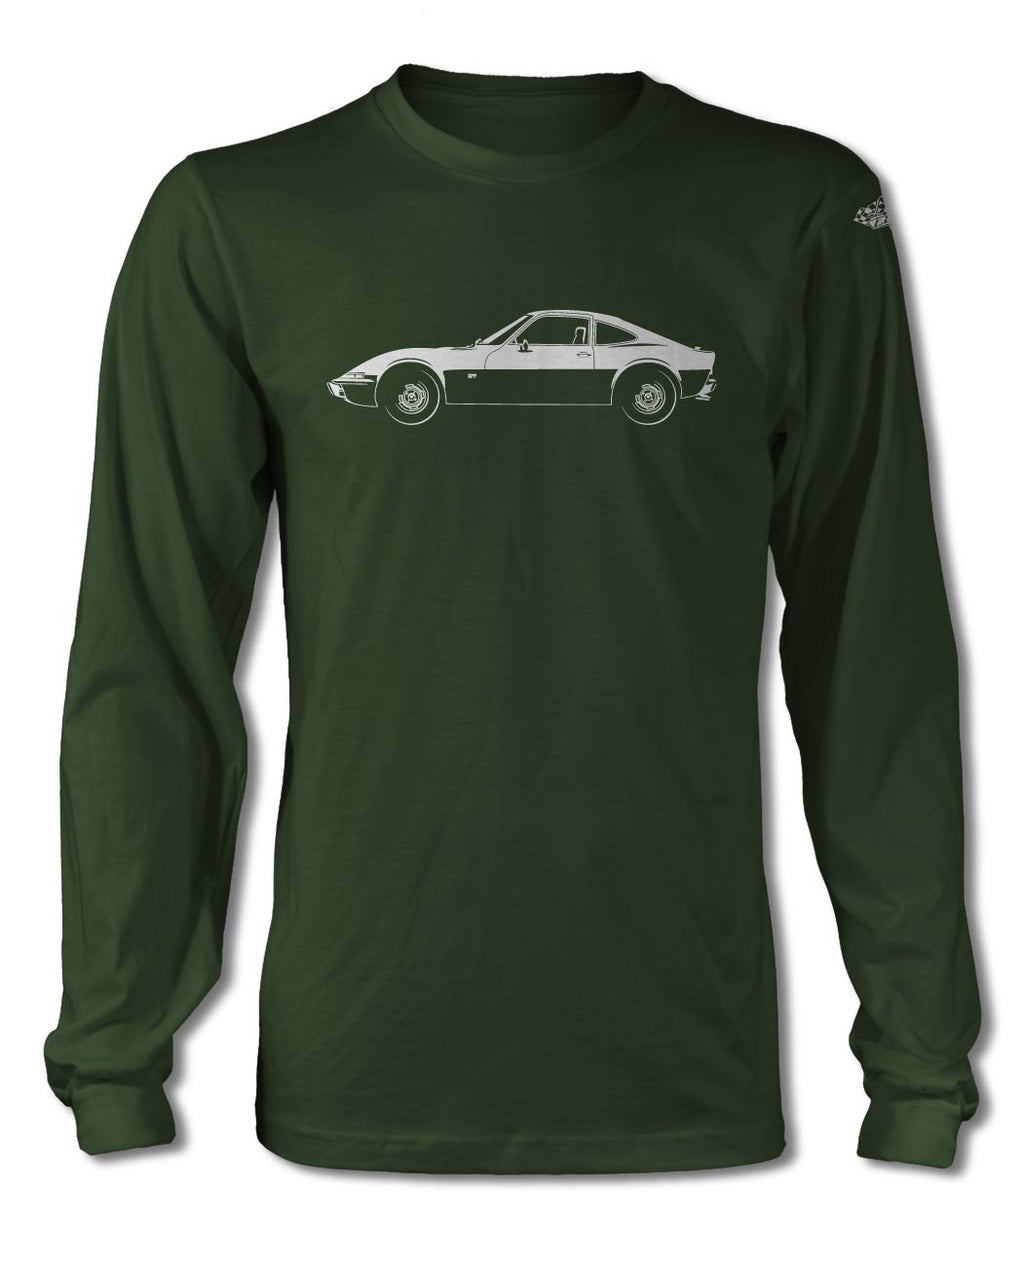 Opel GT Coupe T-Shirt - Long Sleeves - Side View